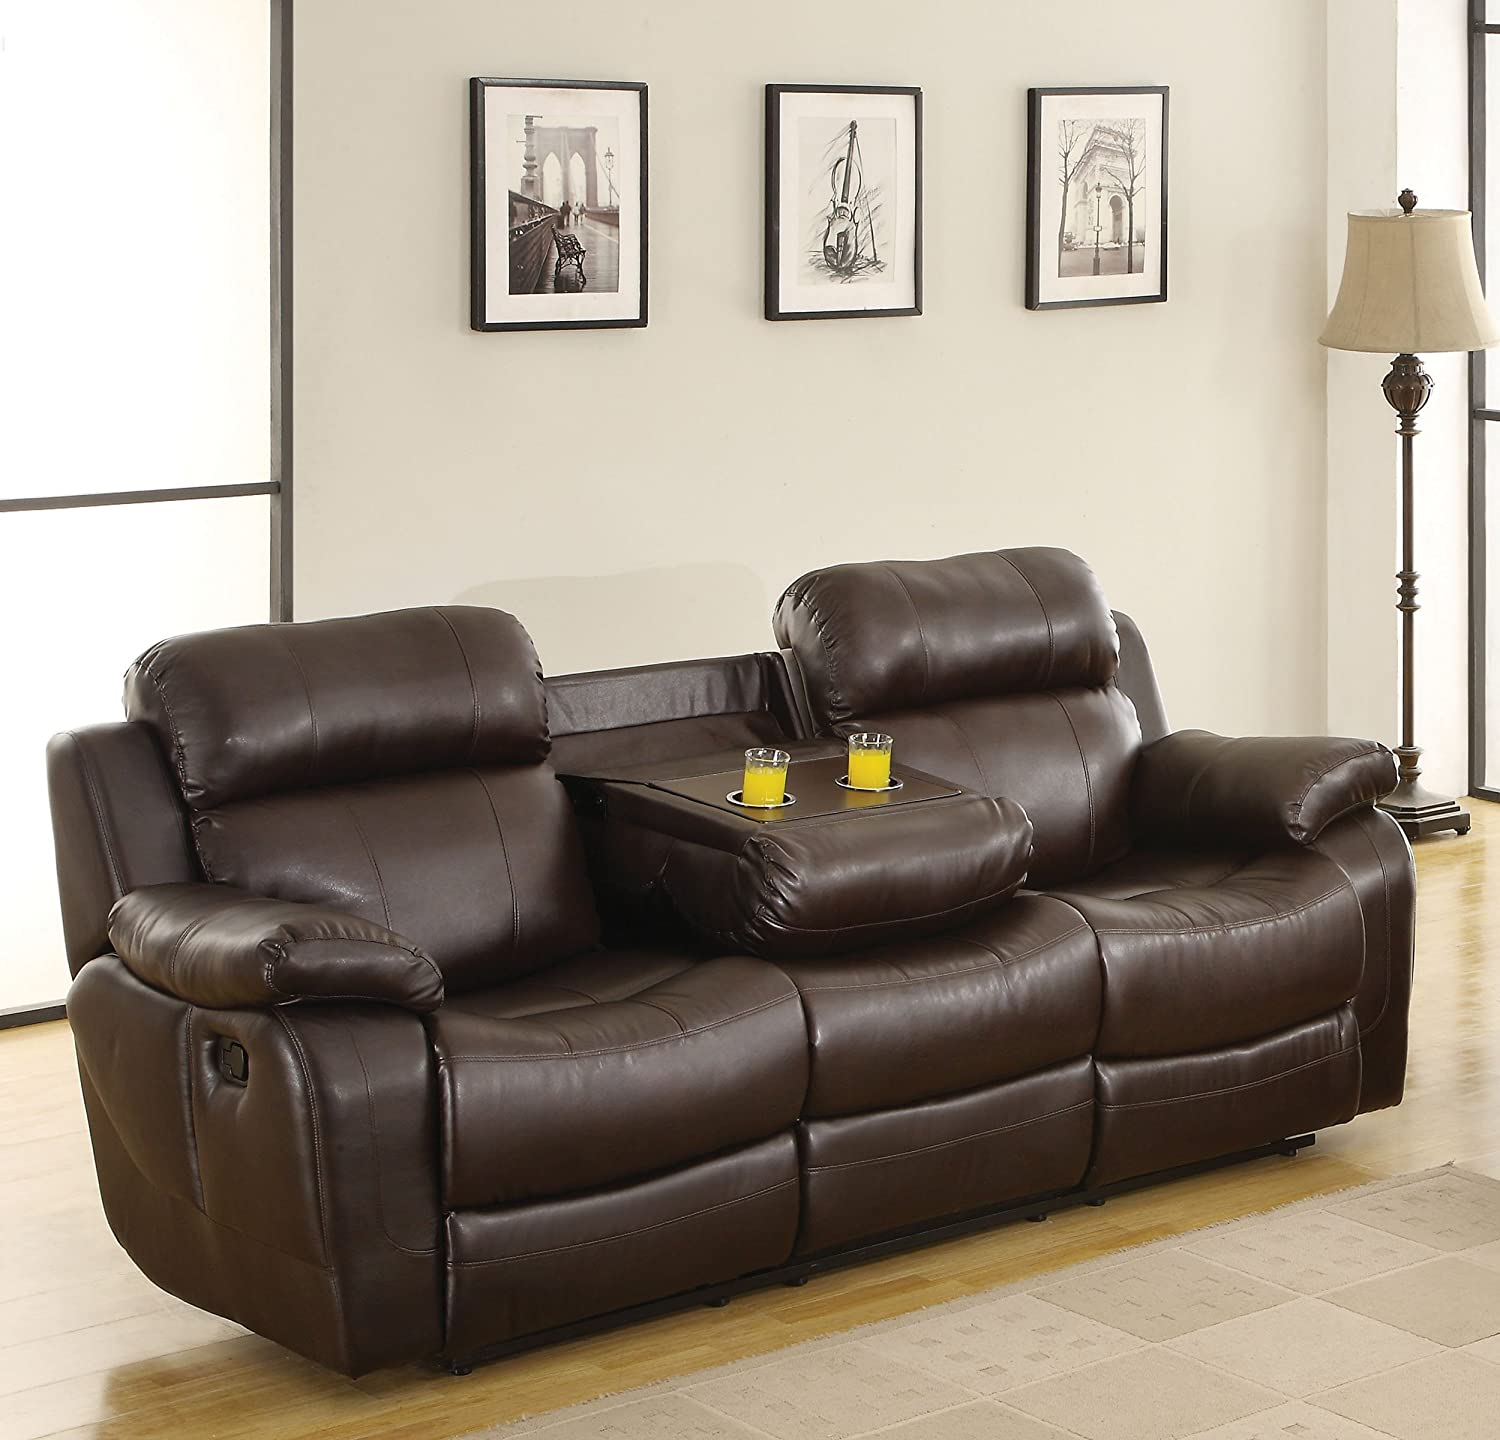 Amazon.com Homelegance Marille Reclining Sofa w/ Center Console Cup Holder Brown Bonded Leather Kitchen u0026 Dining : recliner sofa with console - islam-shia.org